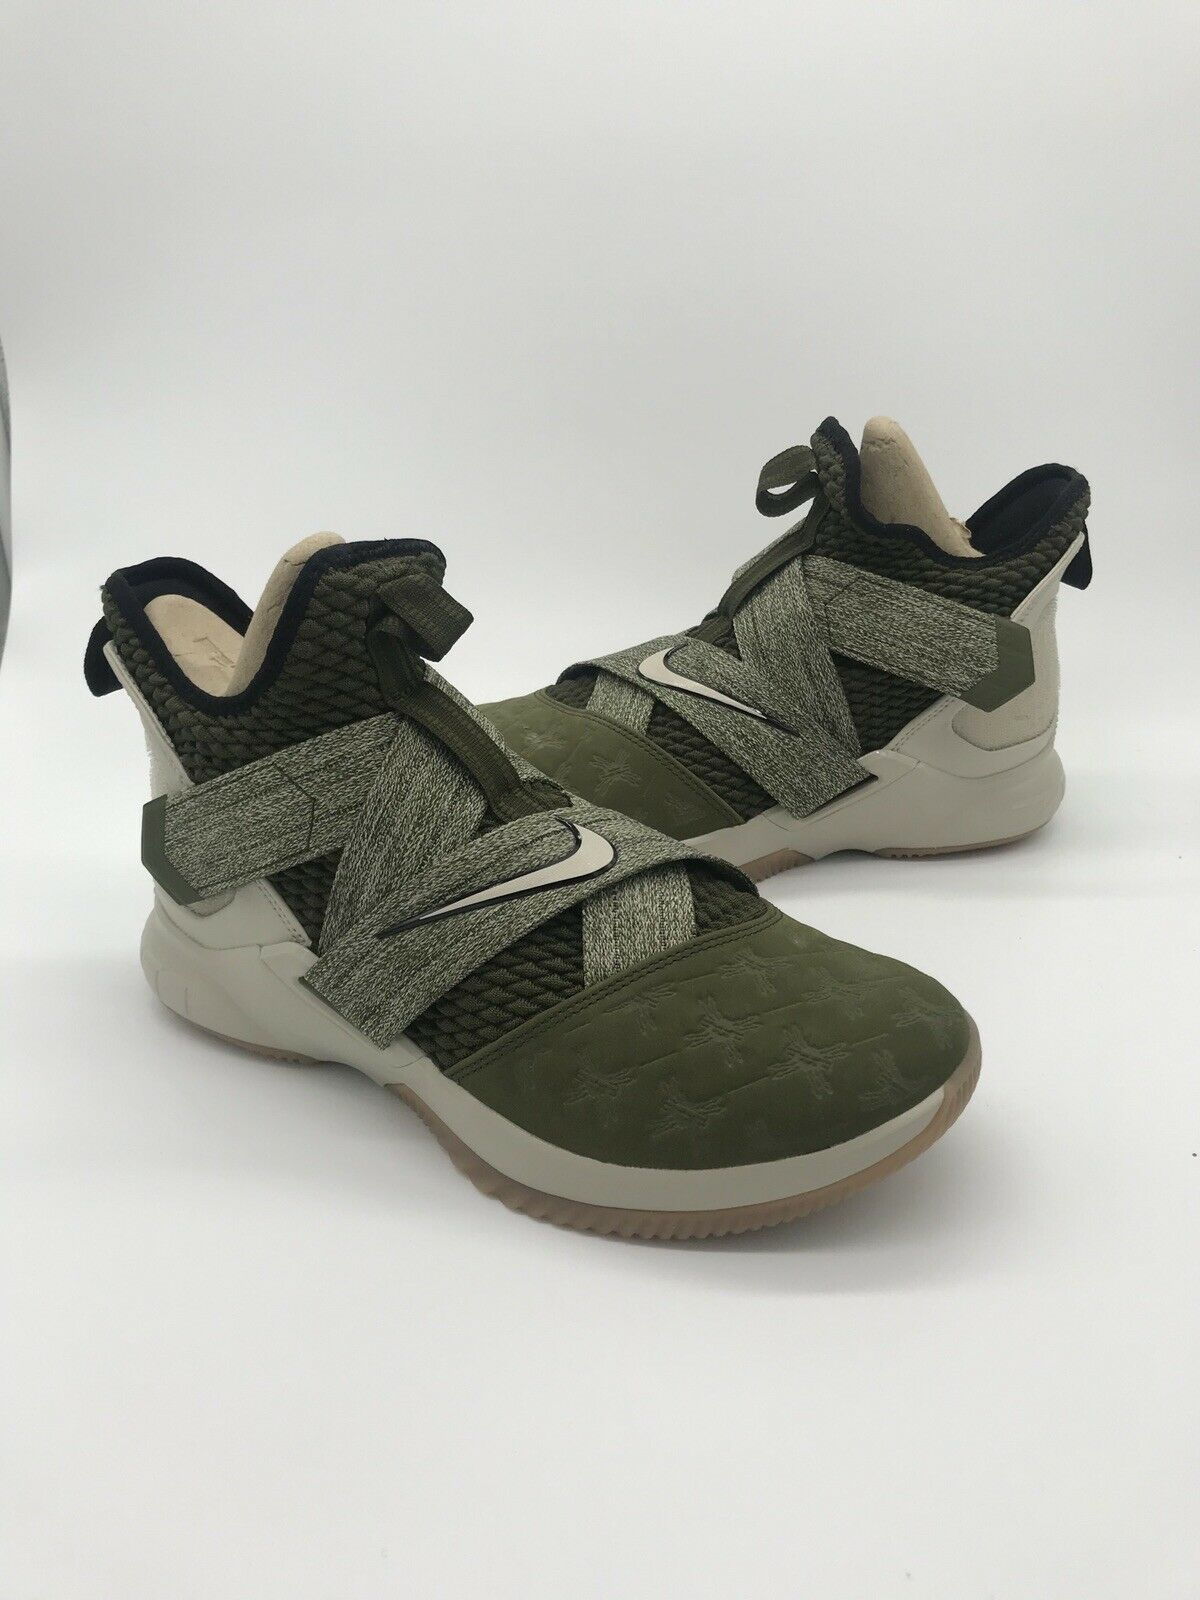 Nike Men's LeBron Soldier XII Basketball shoes Olive AO2609 300 Sz 10.5